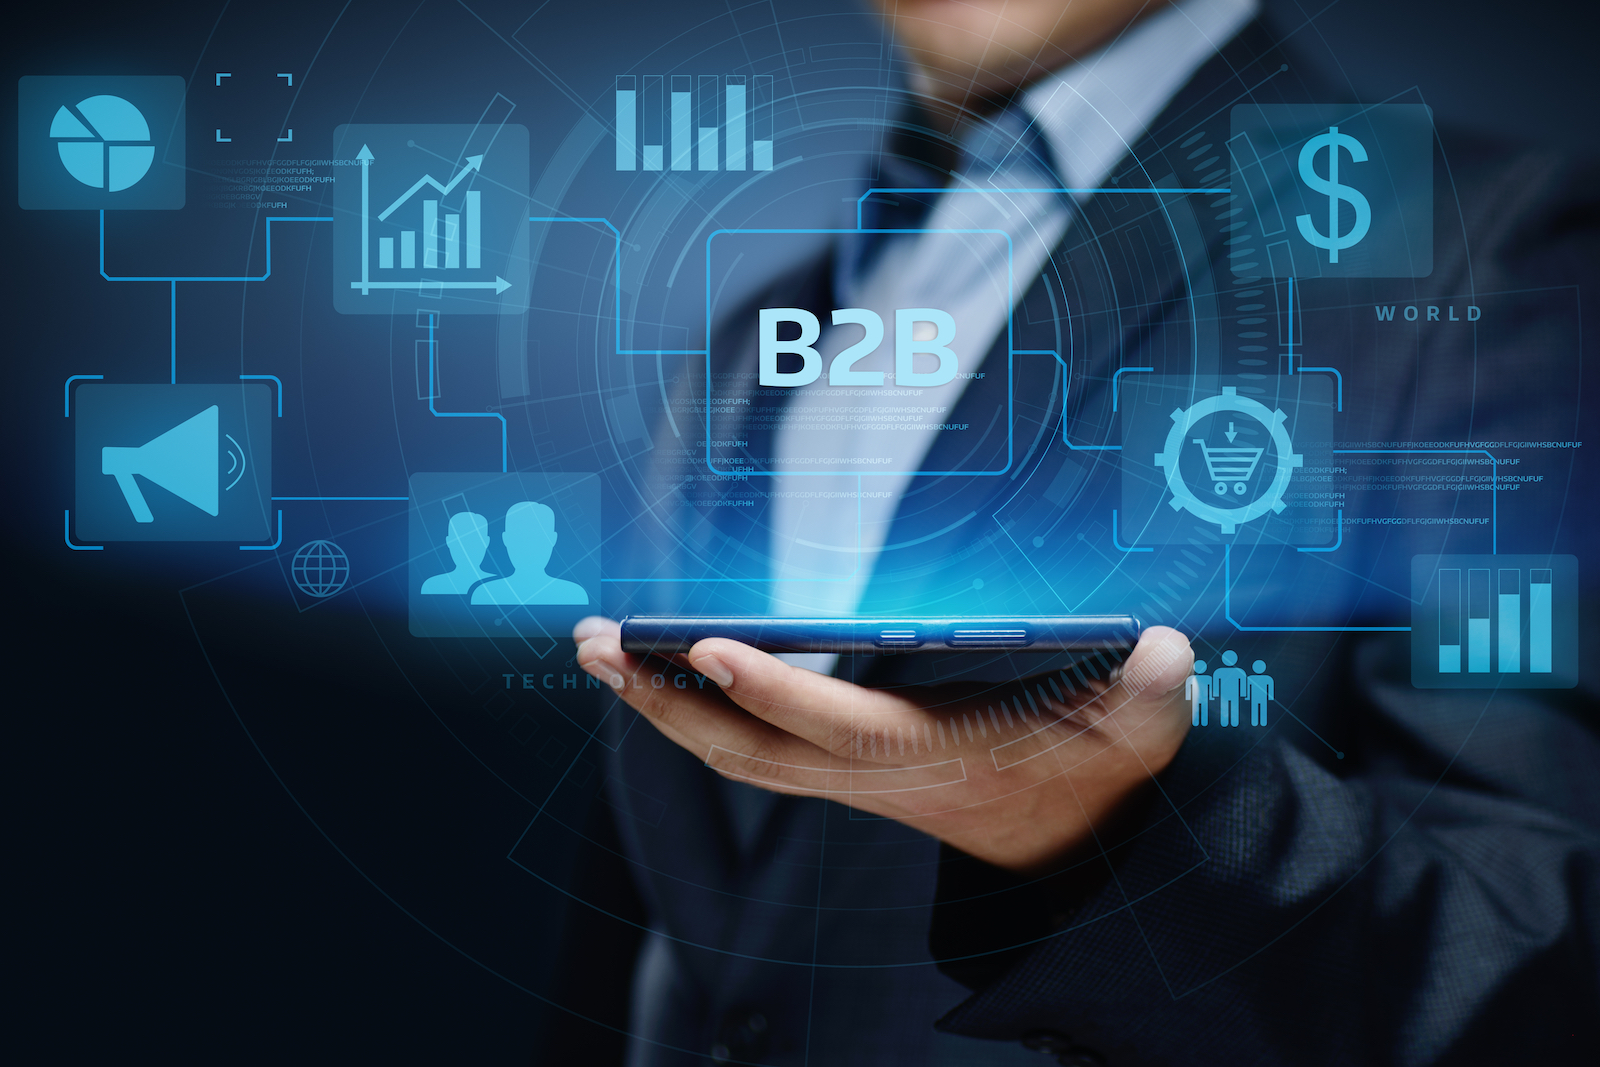 Man Holding a Tablet | B2B Ecommerce: 9 Tips To Help Execute Your Strategy